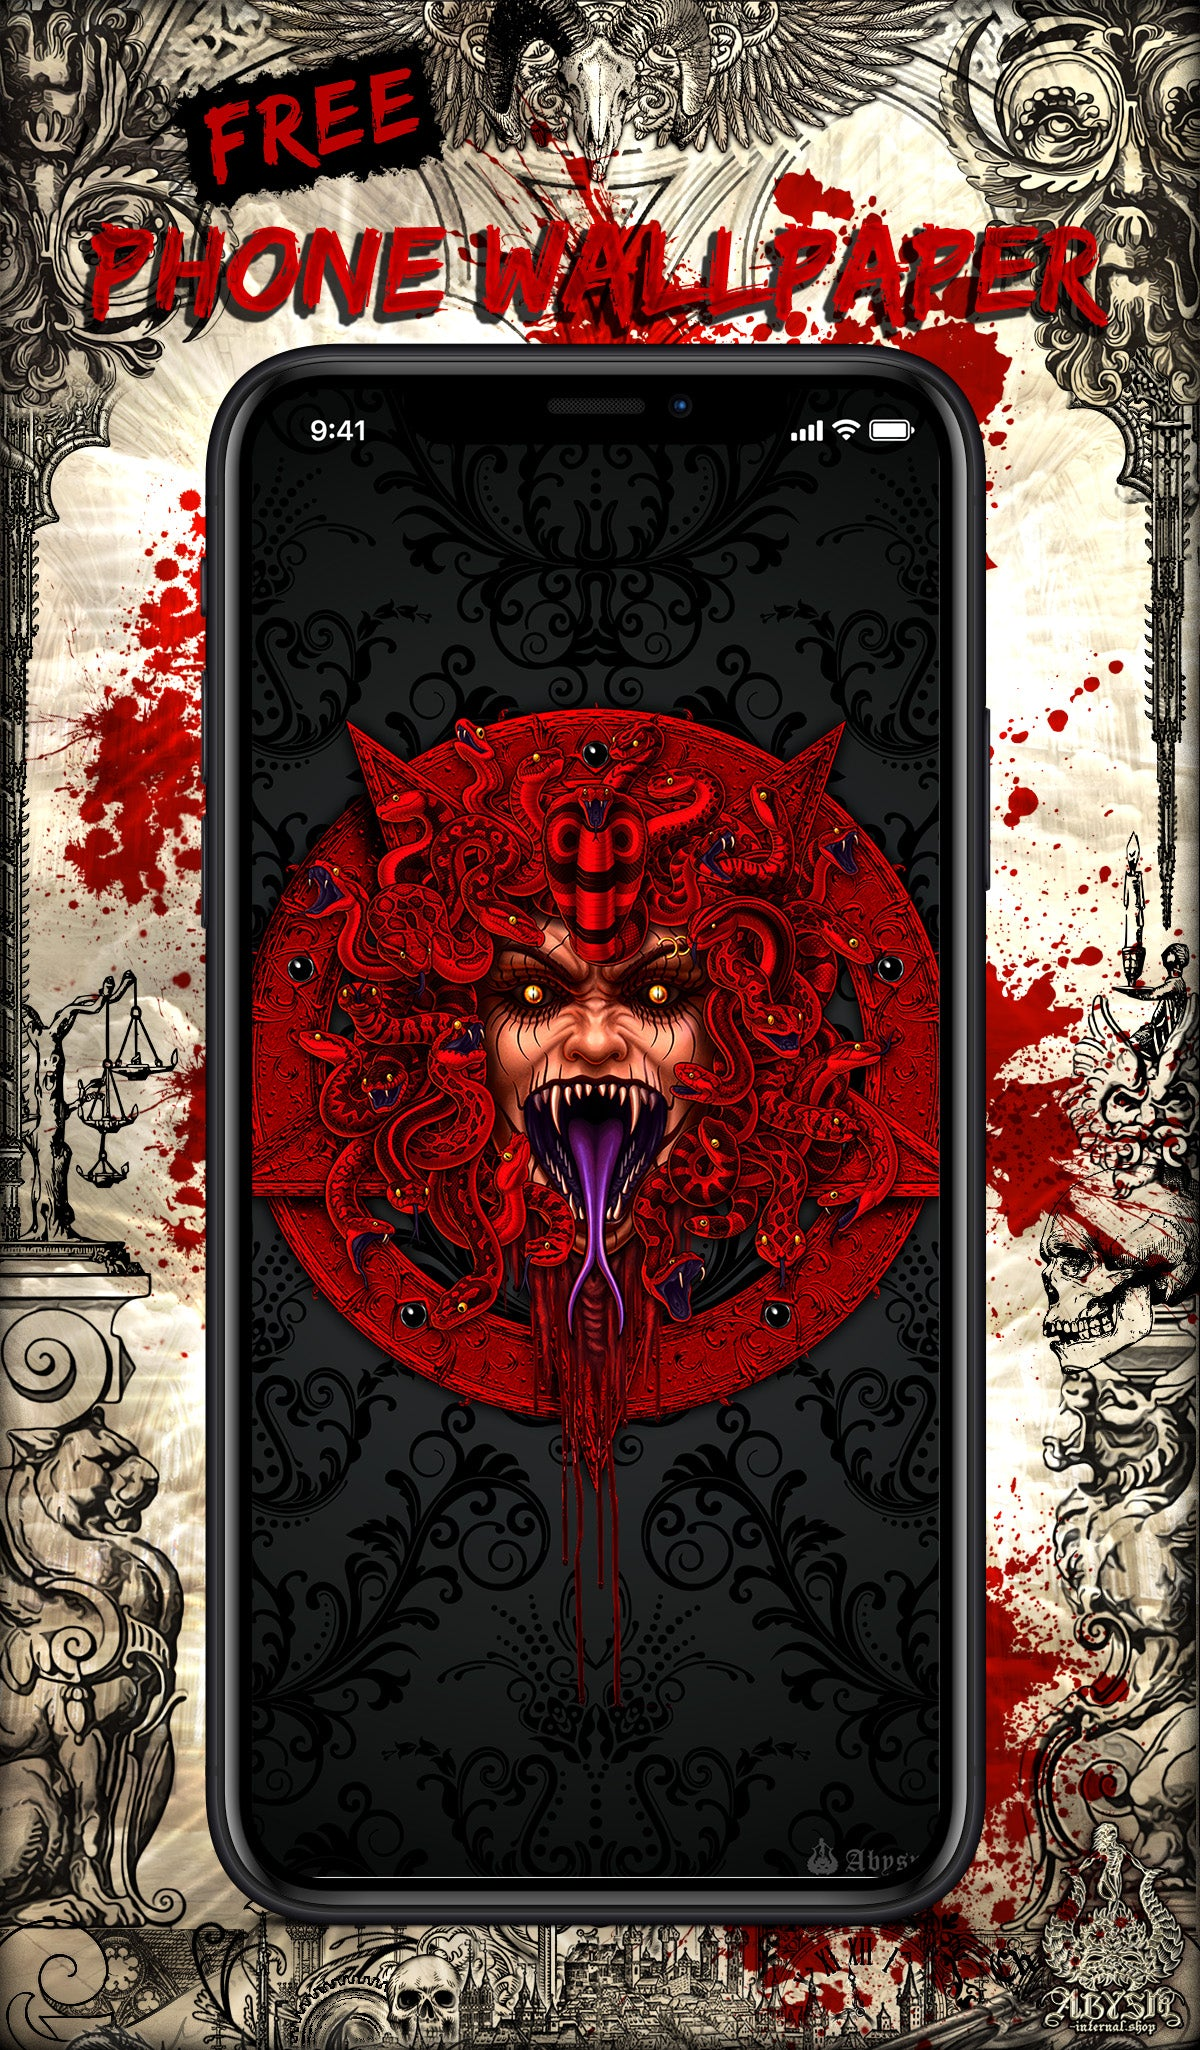 Free Wallpaper for Phone, depicting a Demon Medusa with a Red Pentagram, Satanic Art